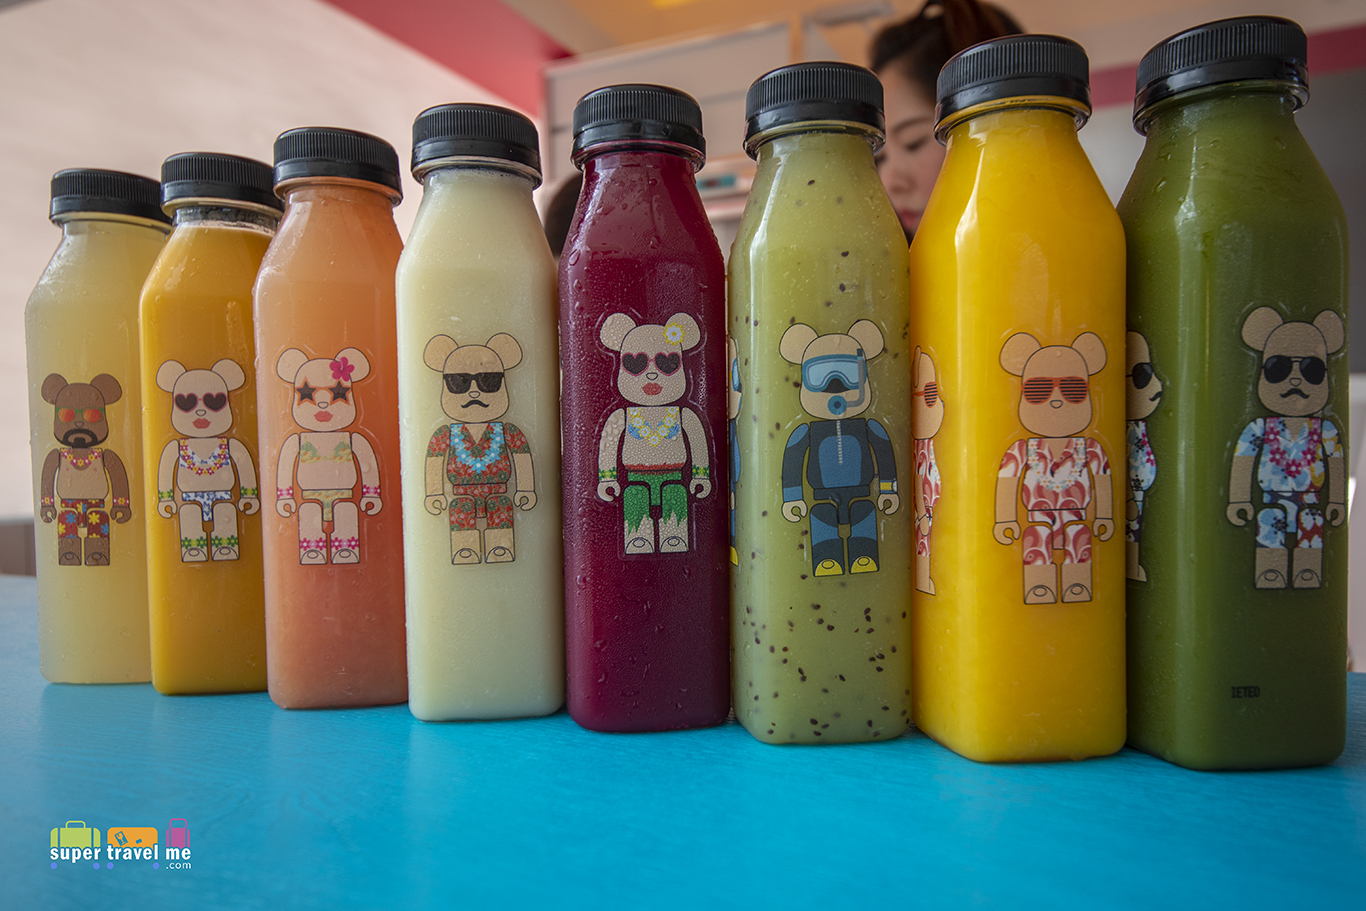 BE@RBRICK Fresh Juice (Price: HK$40)